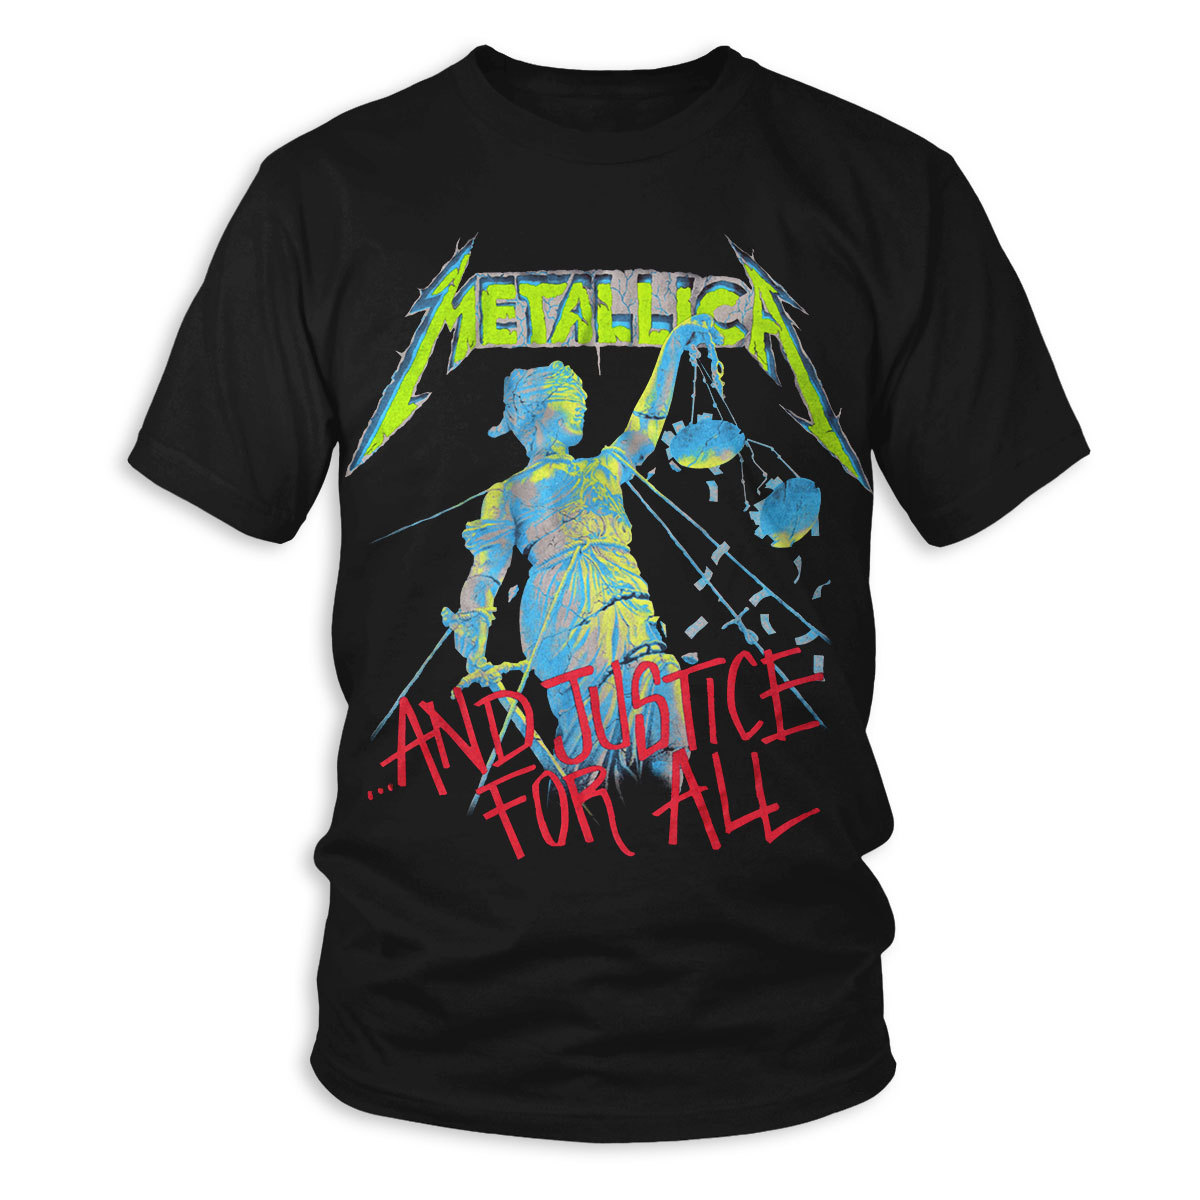 658dfd6db5 And Justice for All T-Shirt | Metallica.com